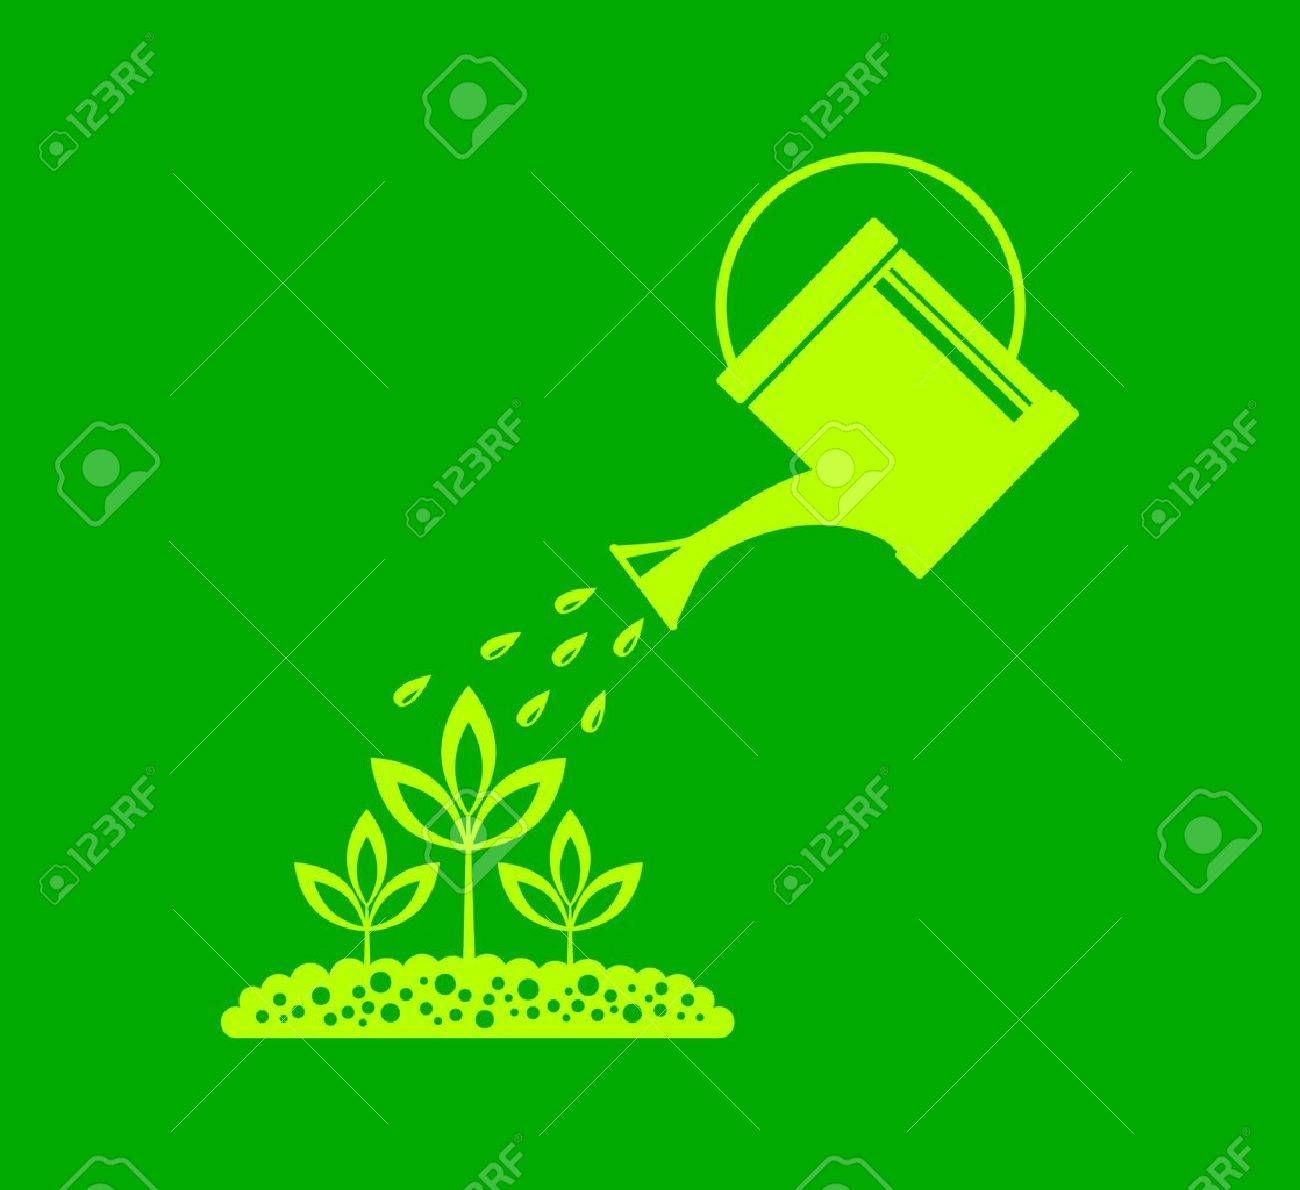 Watering can Stock Vector - 17536846